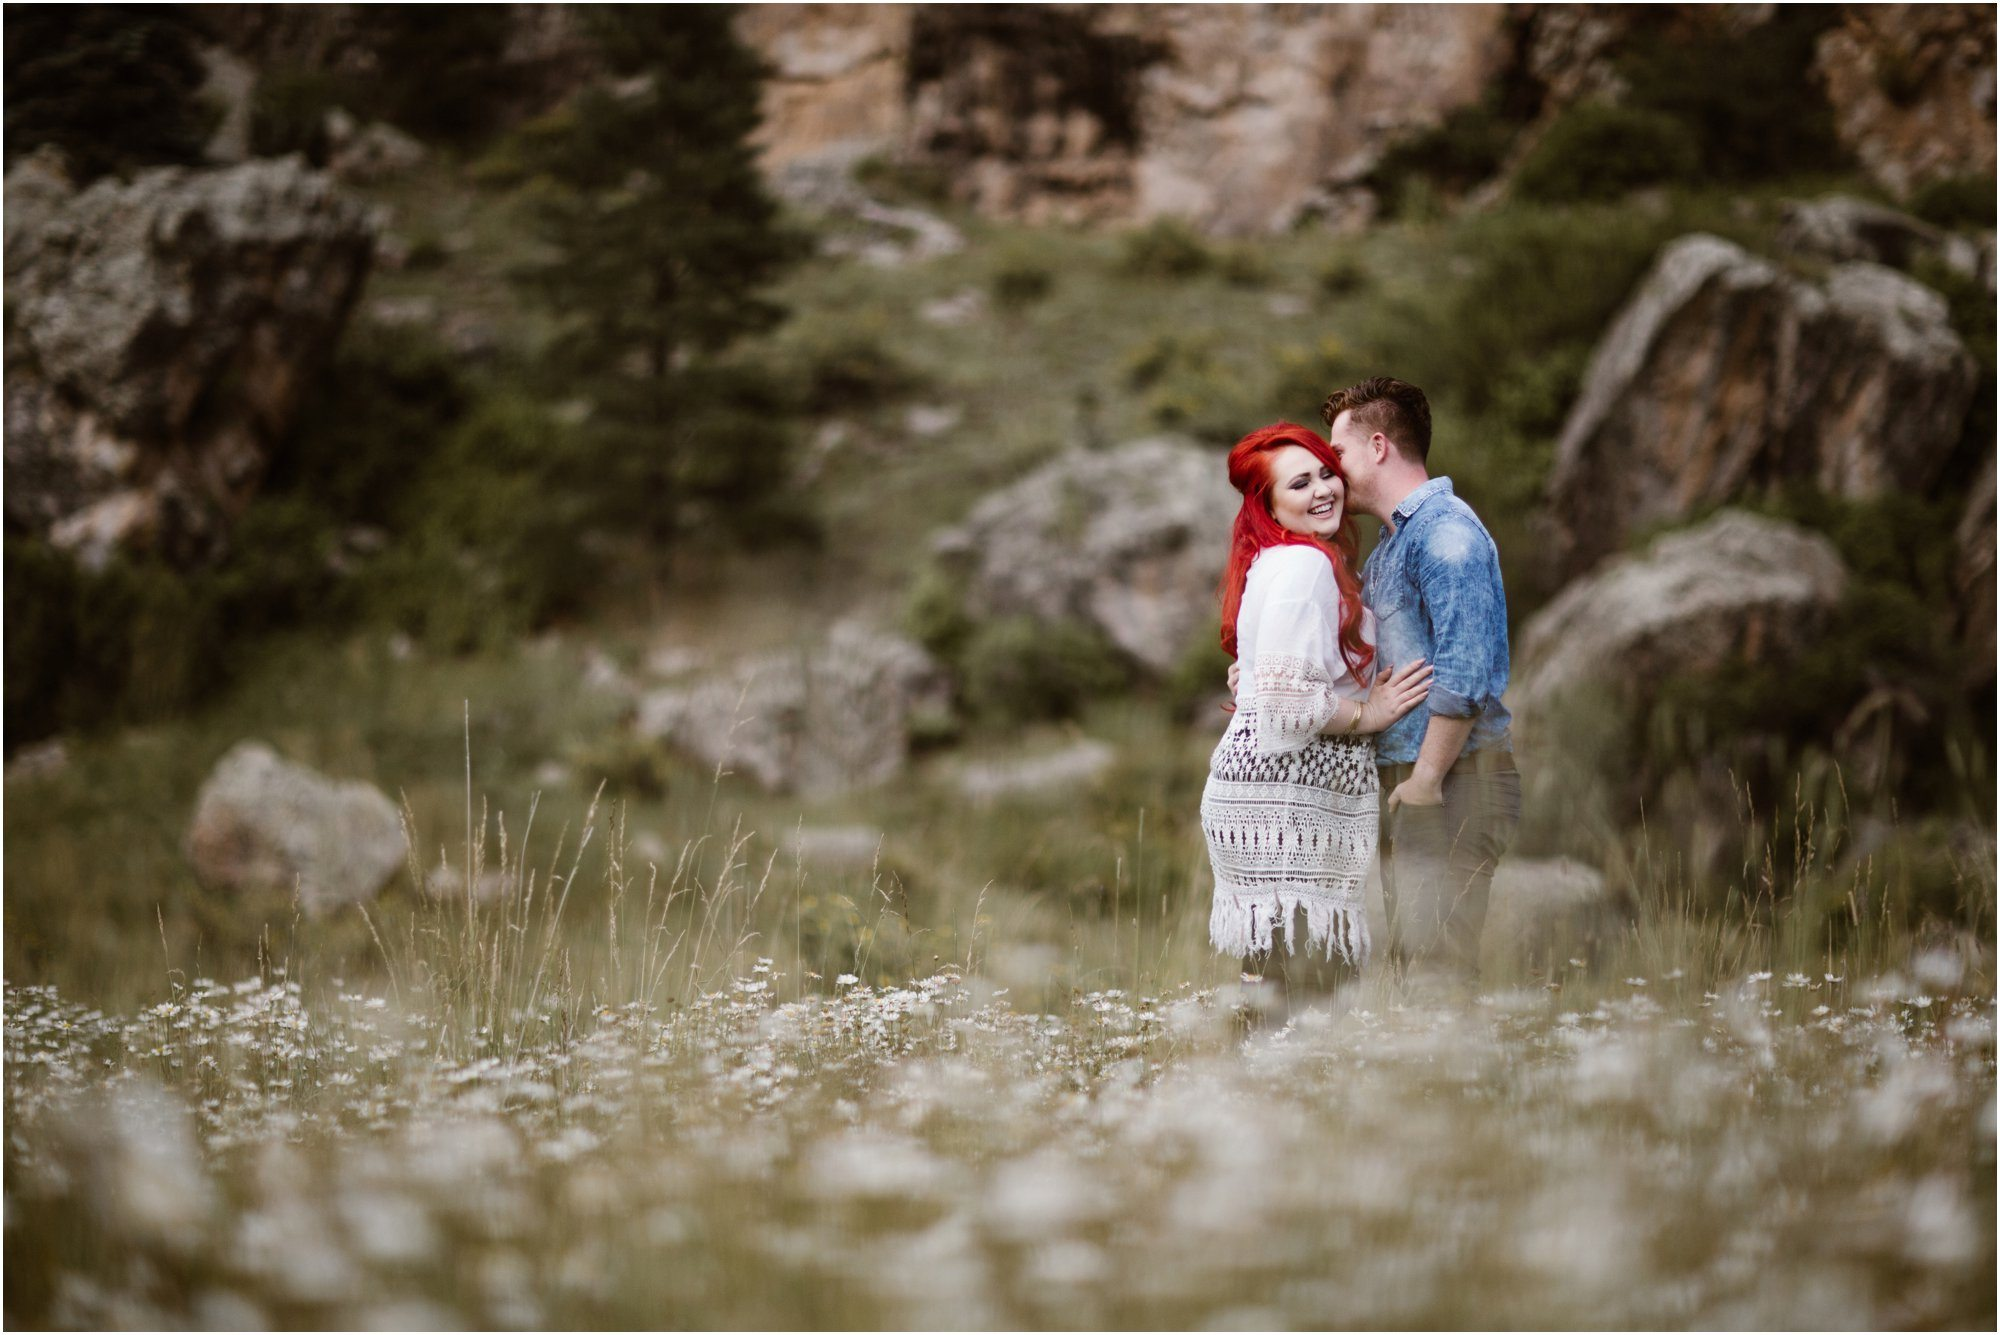 016Blue Rose Photography_ Albuquerque, Santa Fe, New Mexico wedding photographer_ engagement pictures